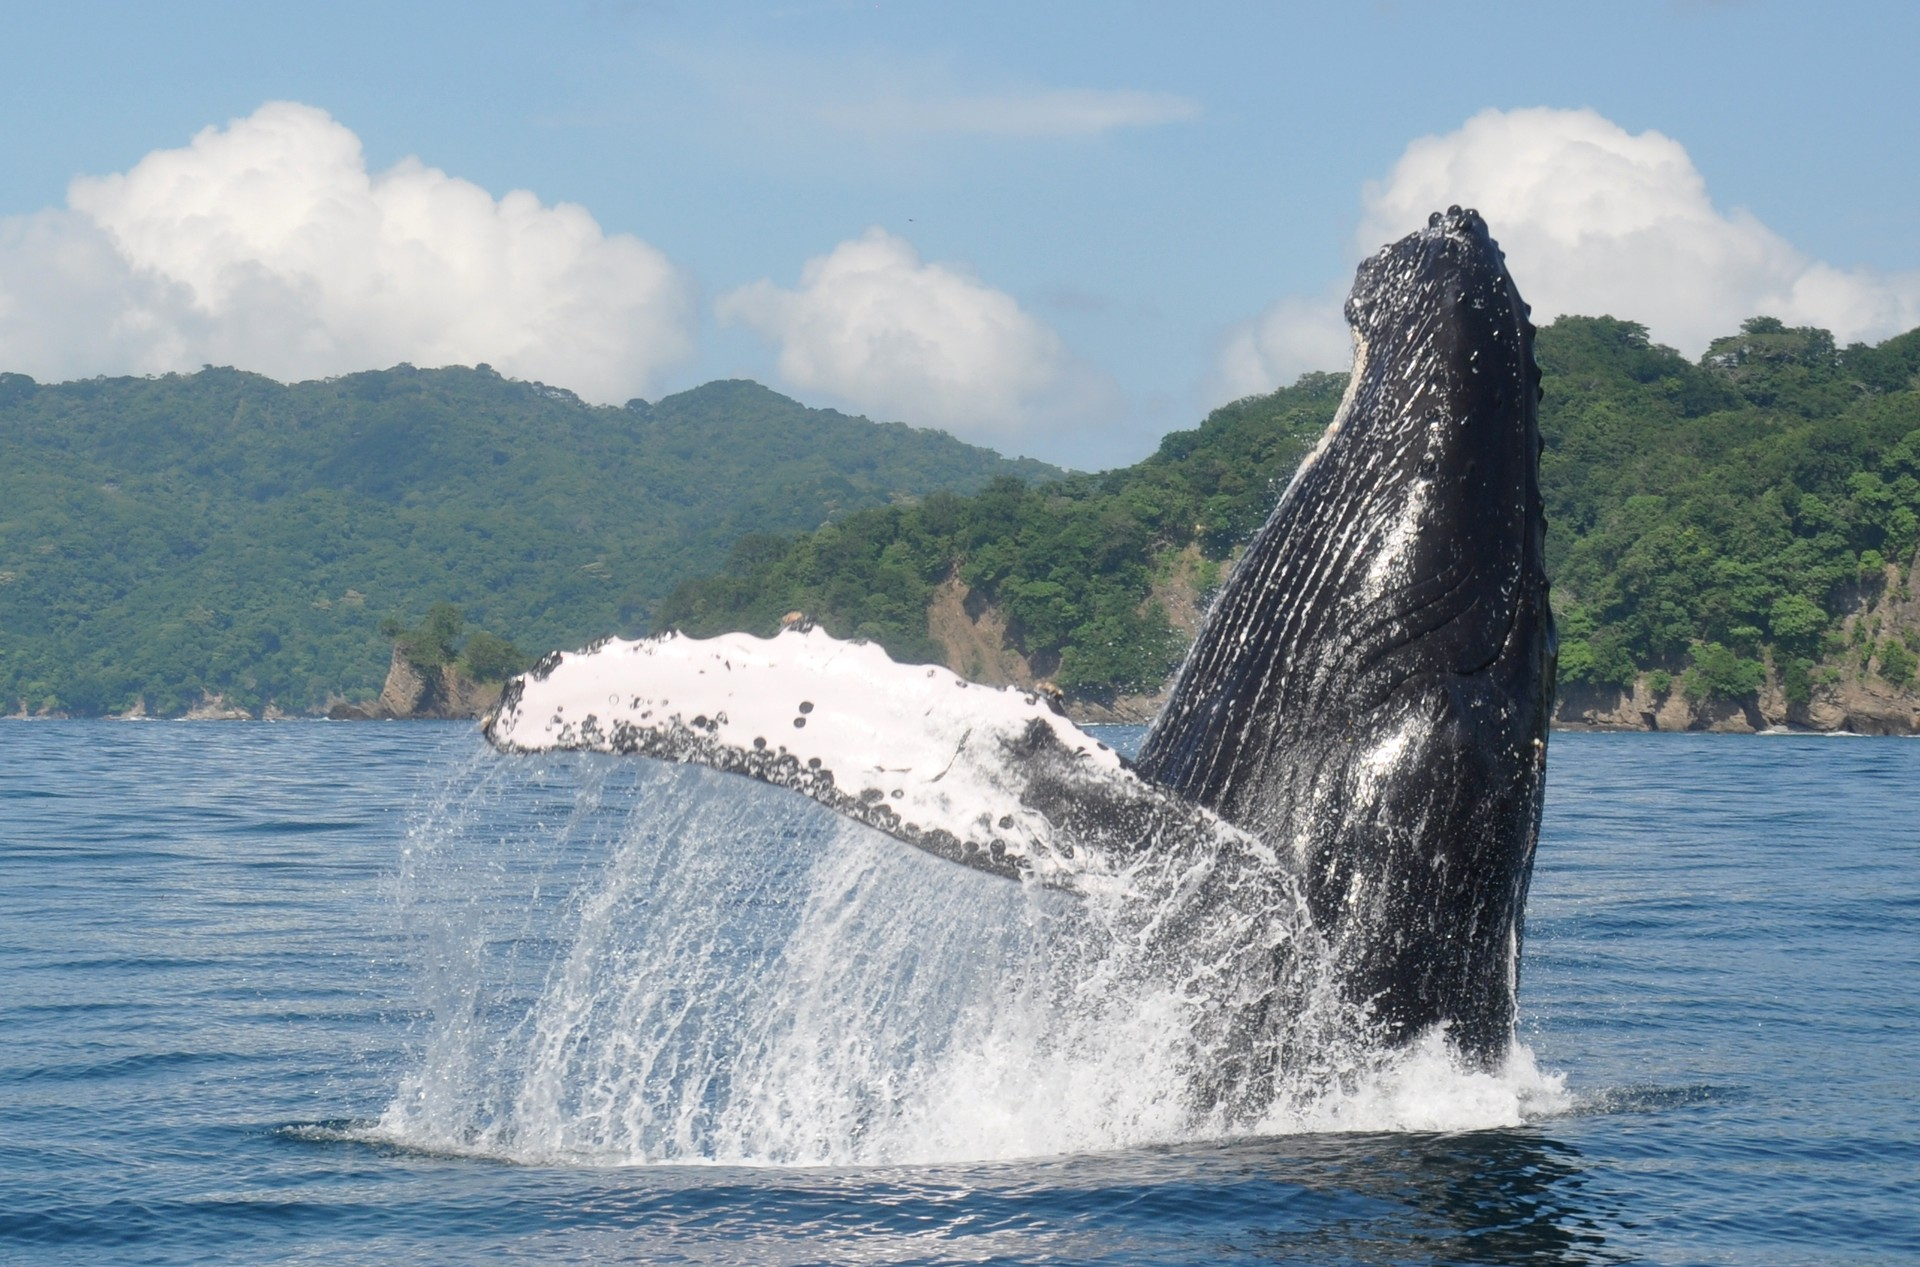 Humpback whale playing in Costa Rica